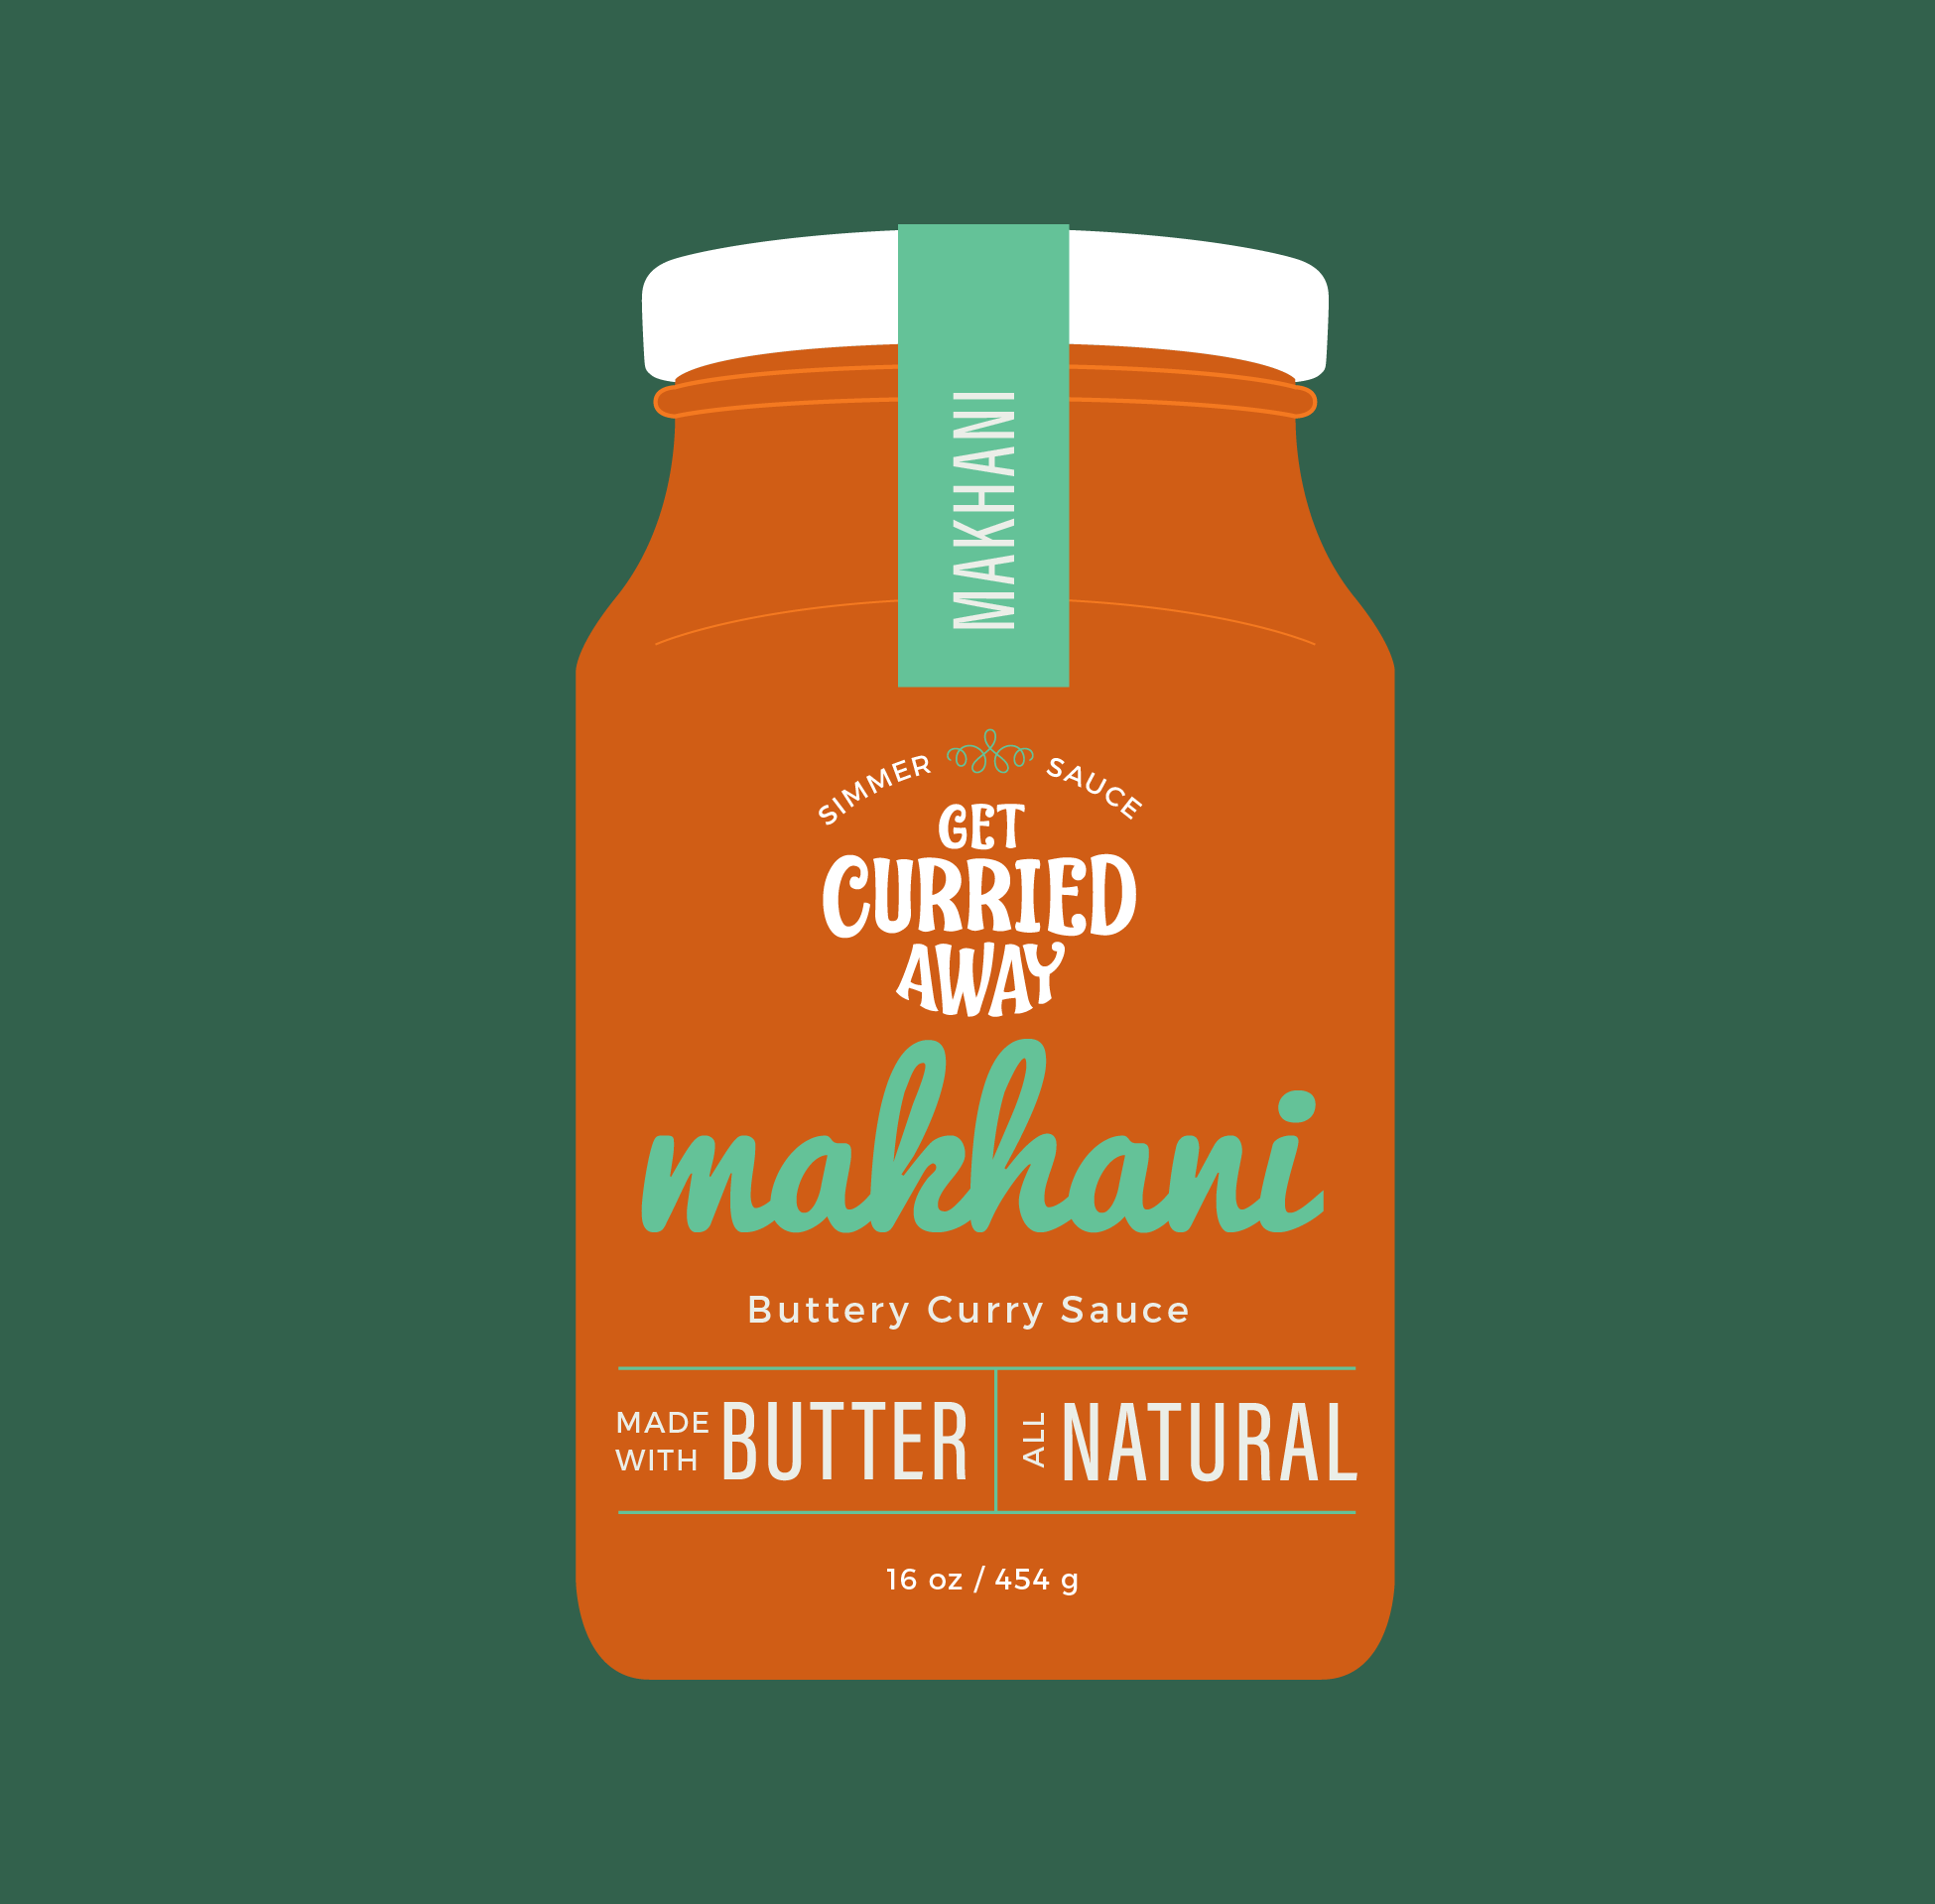 Packaging design for a brand of curry simmer sauce.